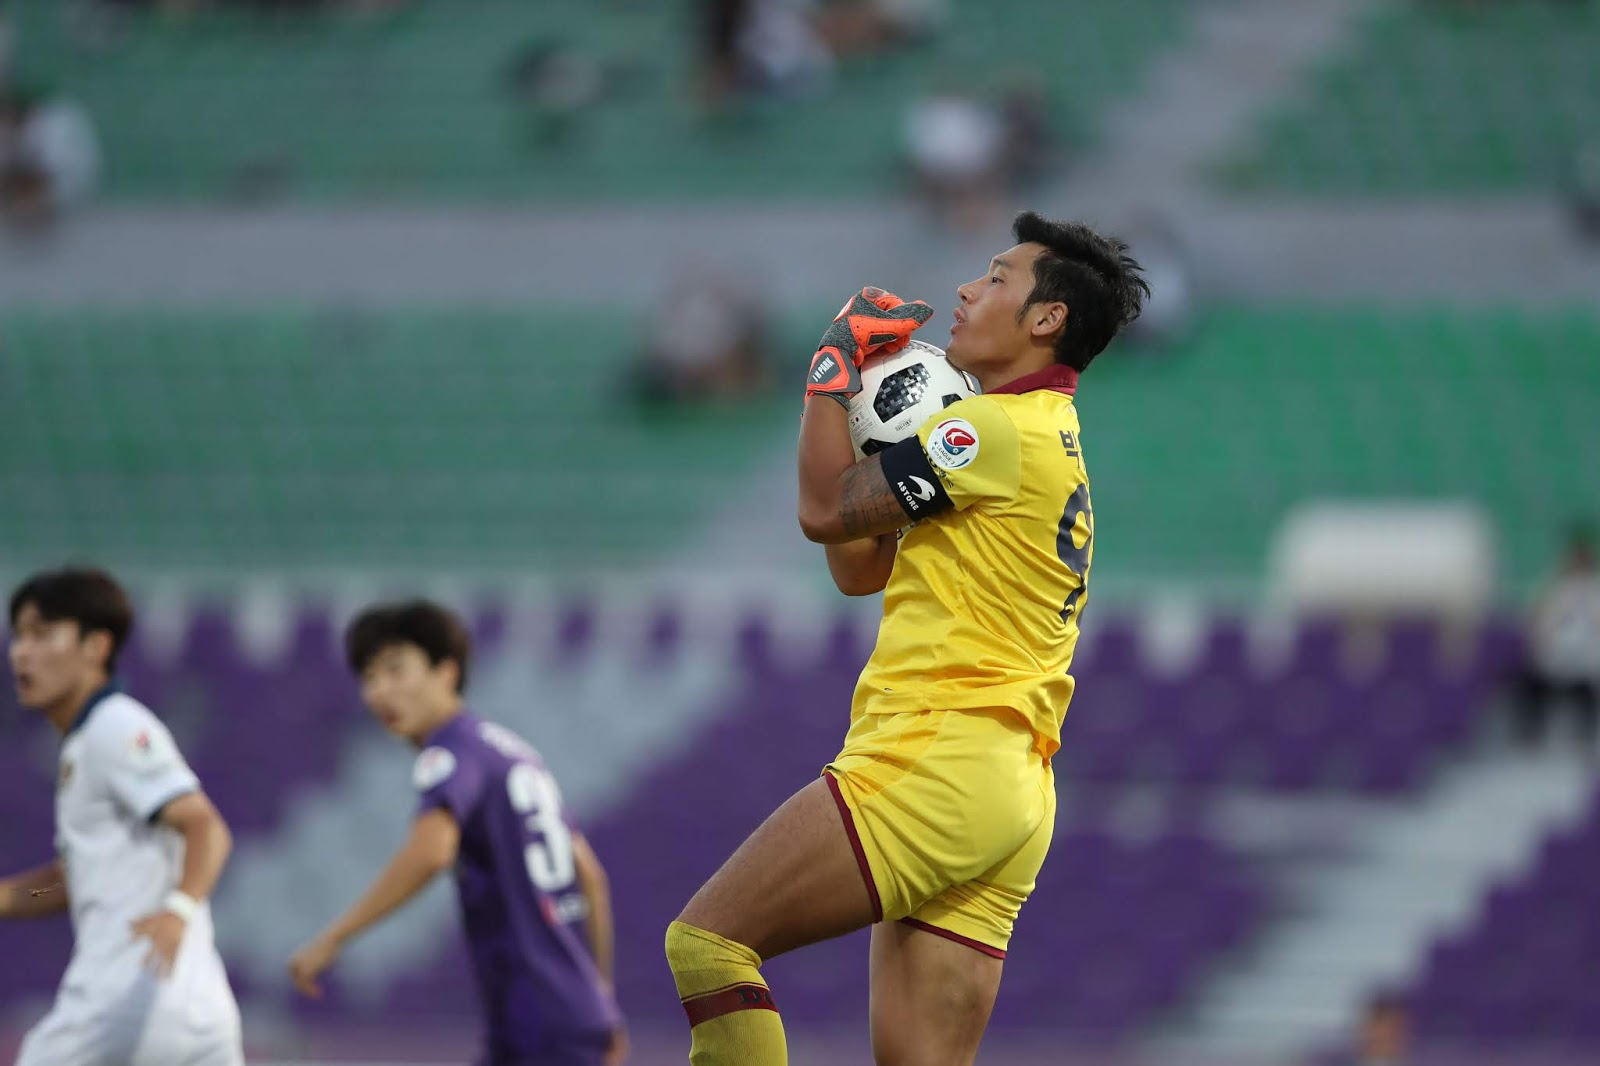 Daejeon Citizen goalkeeper Park Junhyeok